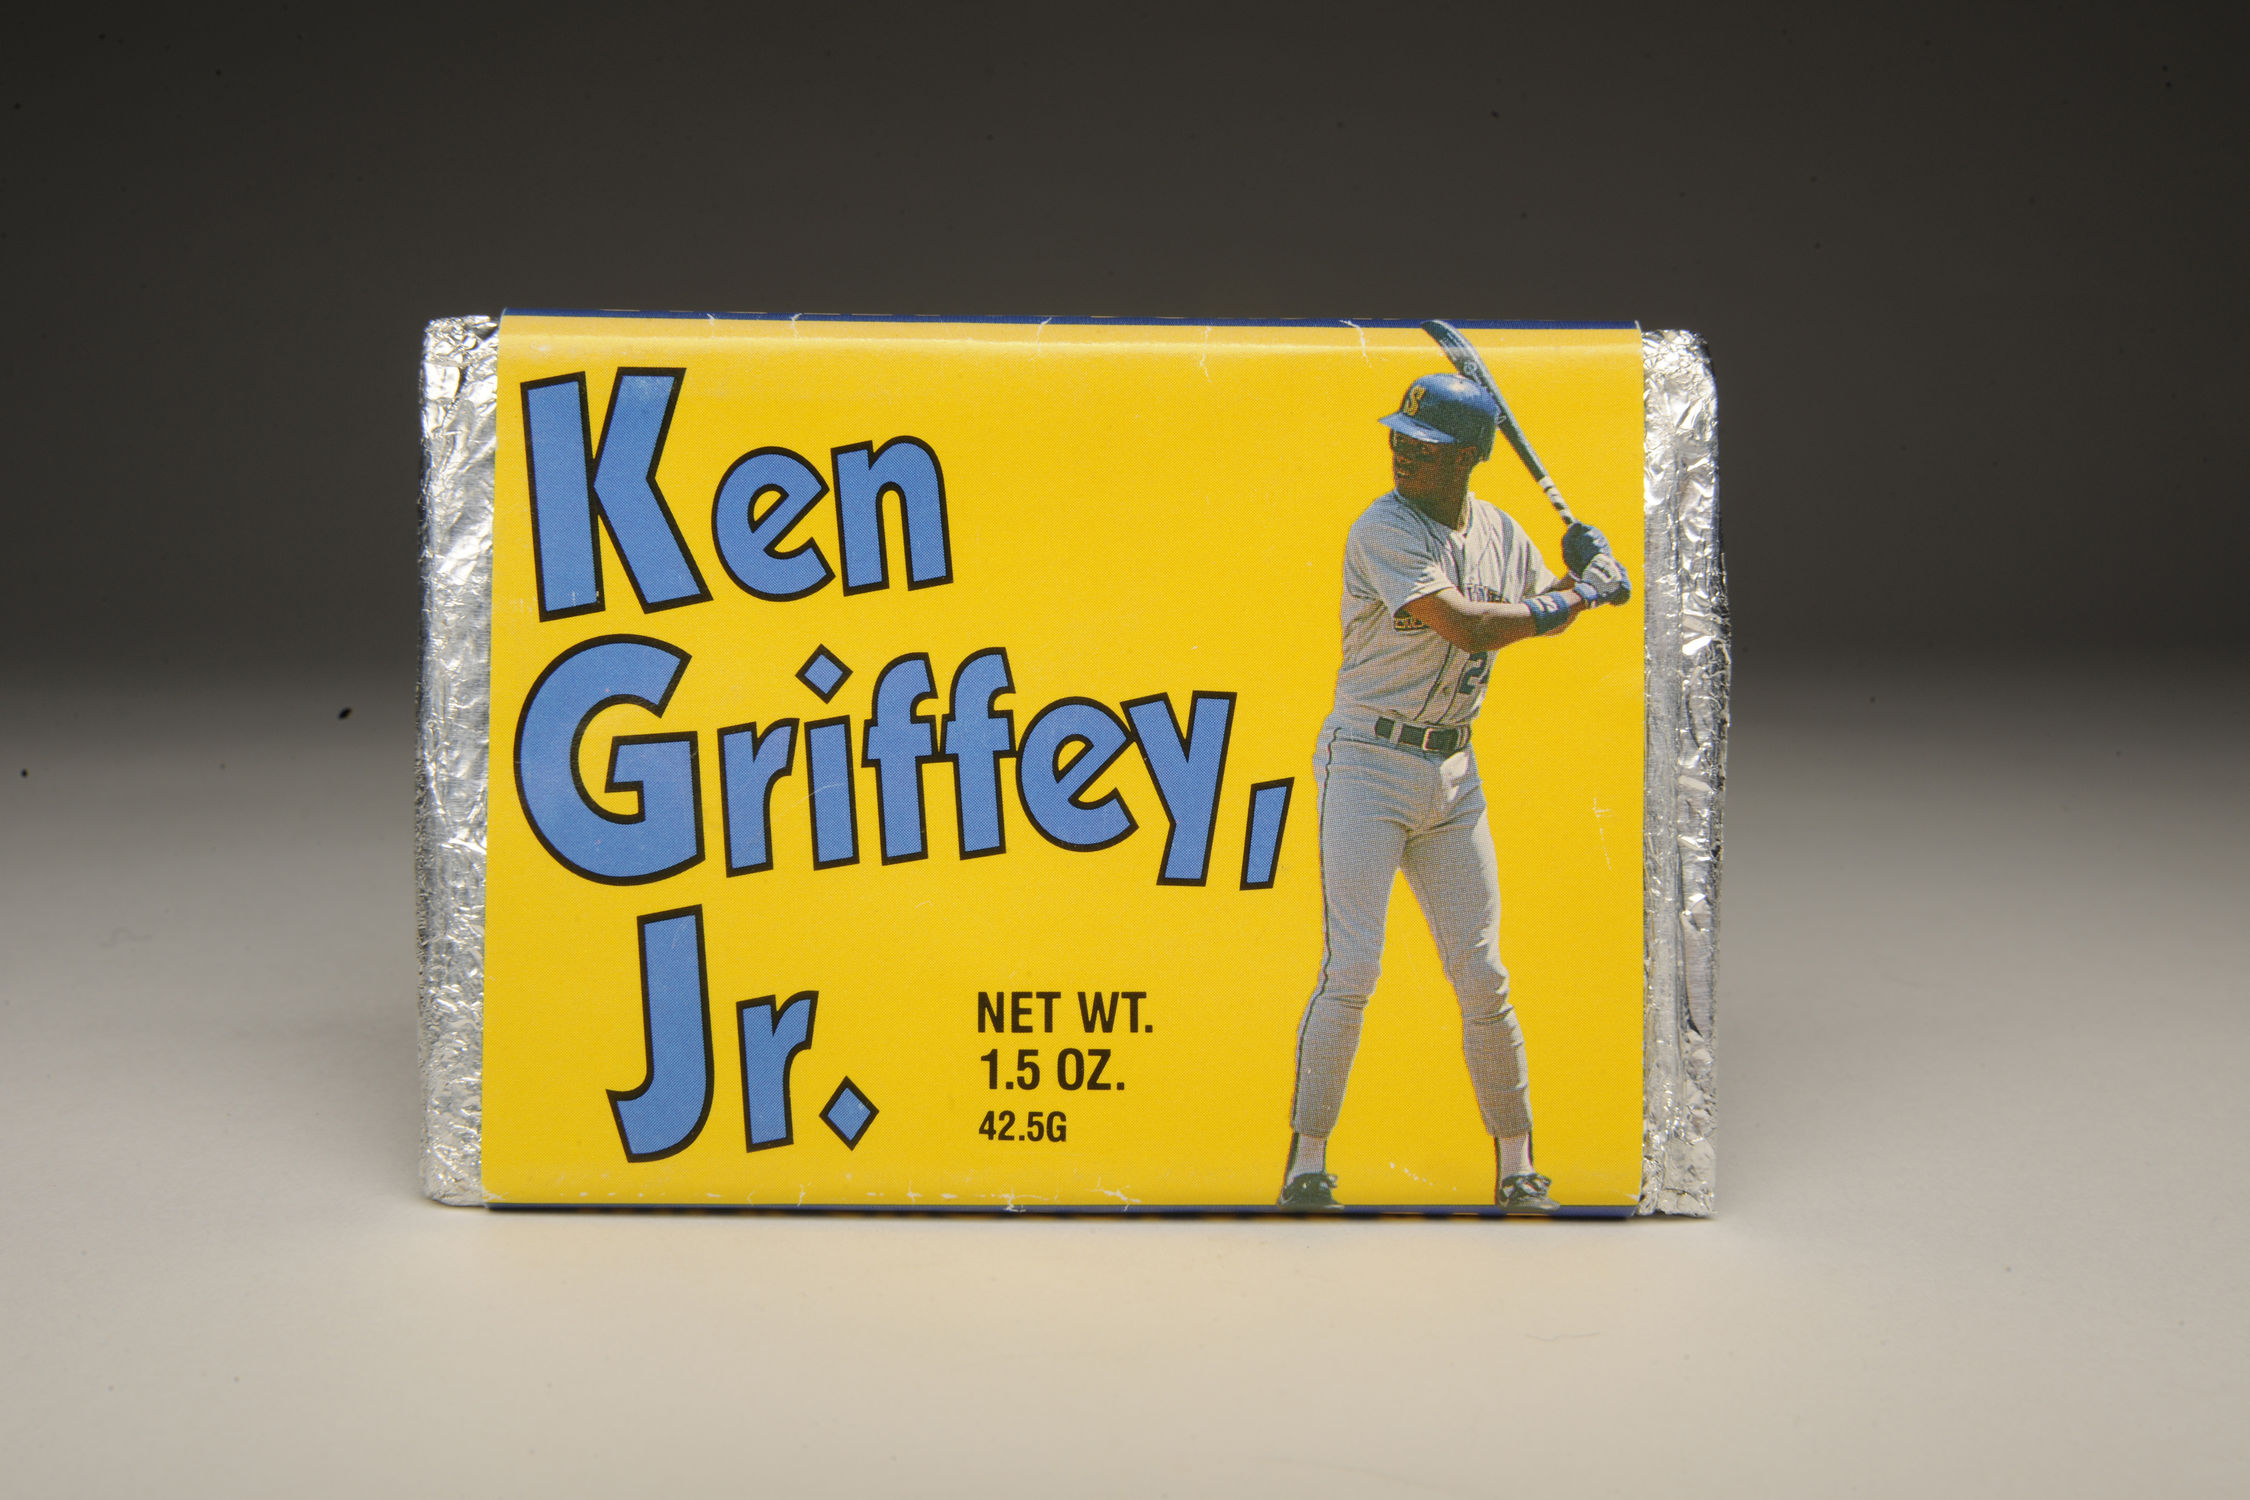 3c069aa7c1 The Ken Griffey Jr. chocolate bar was released just one month after  Griffey's major league